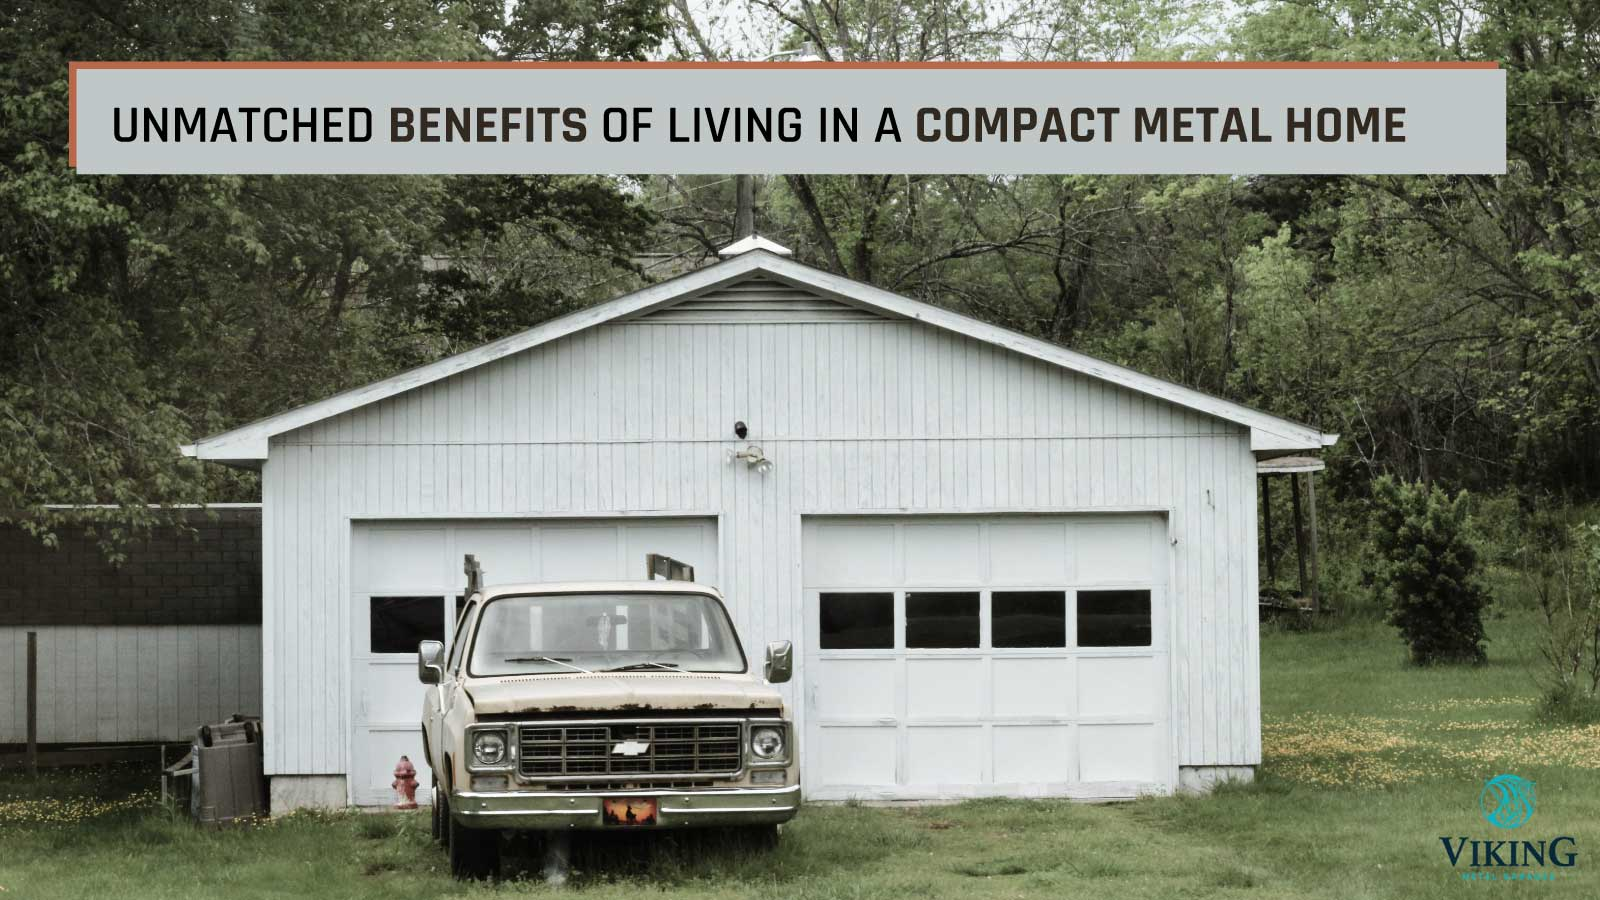 Unmatched Benefits of Living in a Compact Metal Home